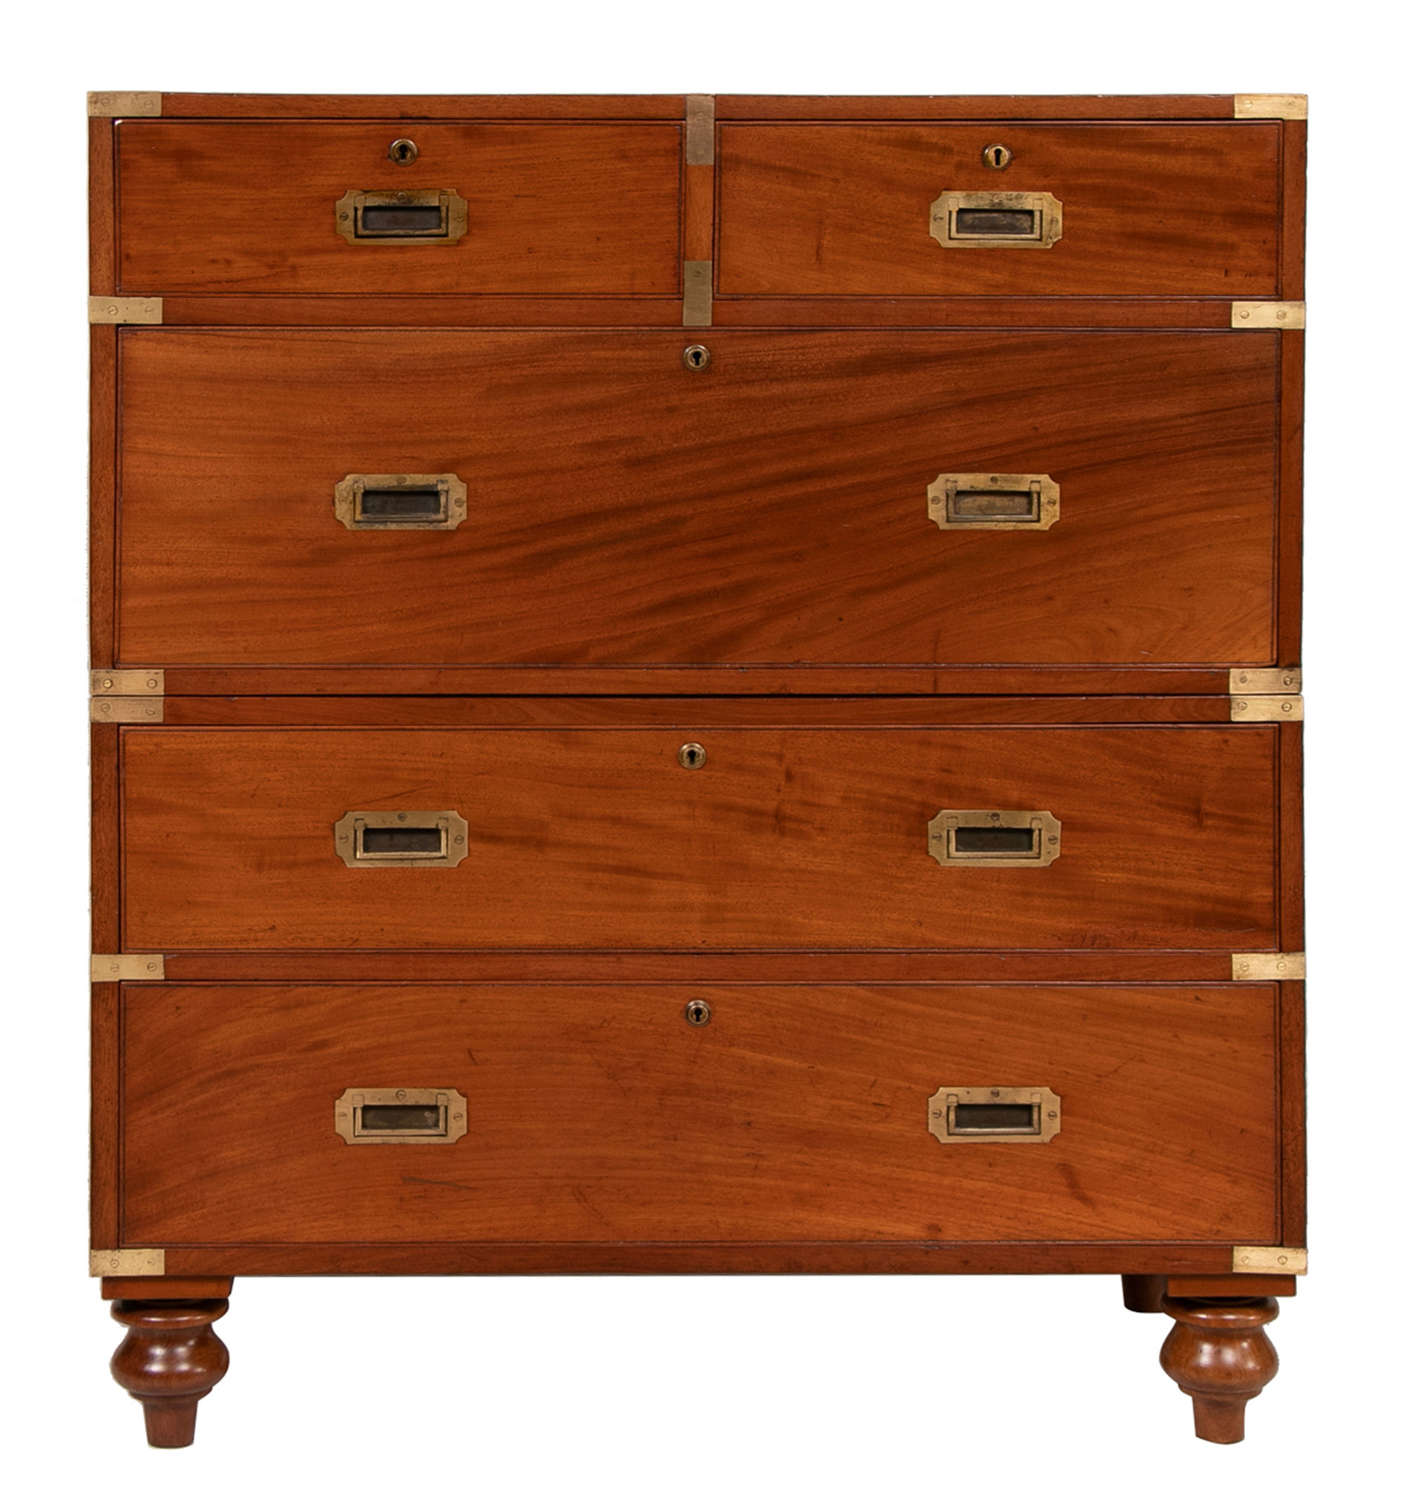 A Superb 19th Century Military Mahogany campaign chest on chest